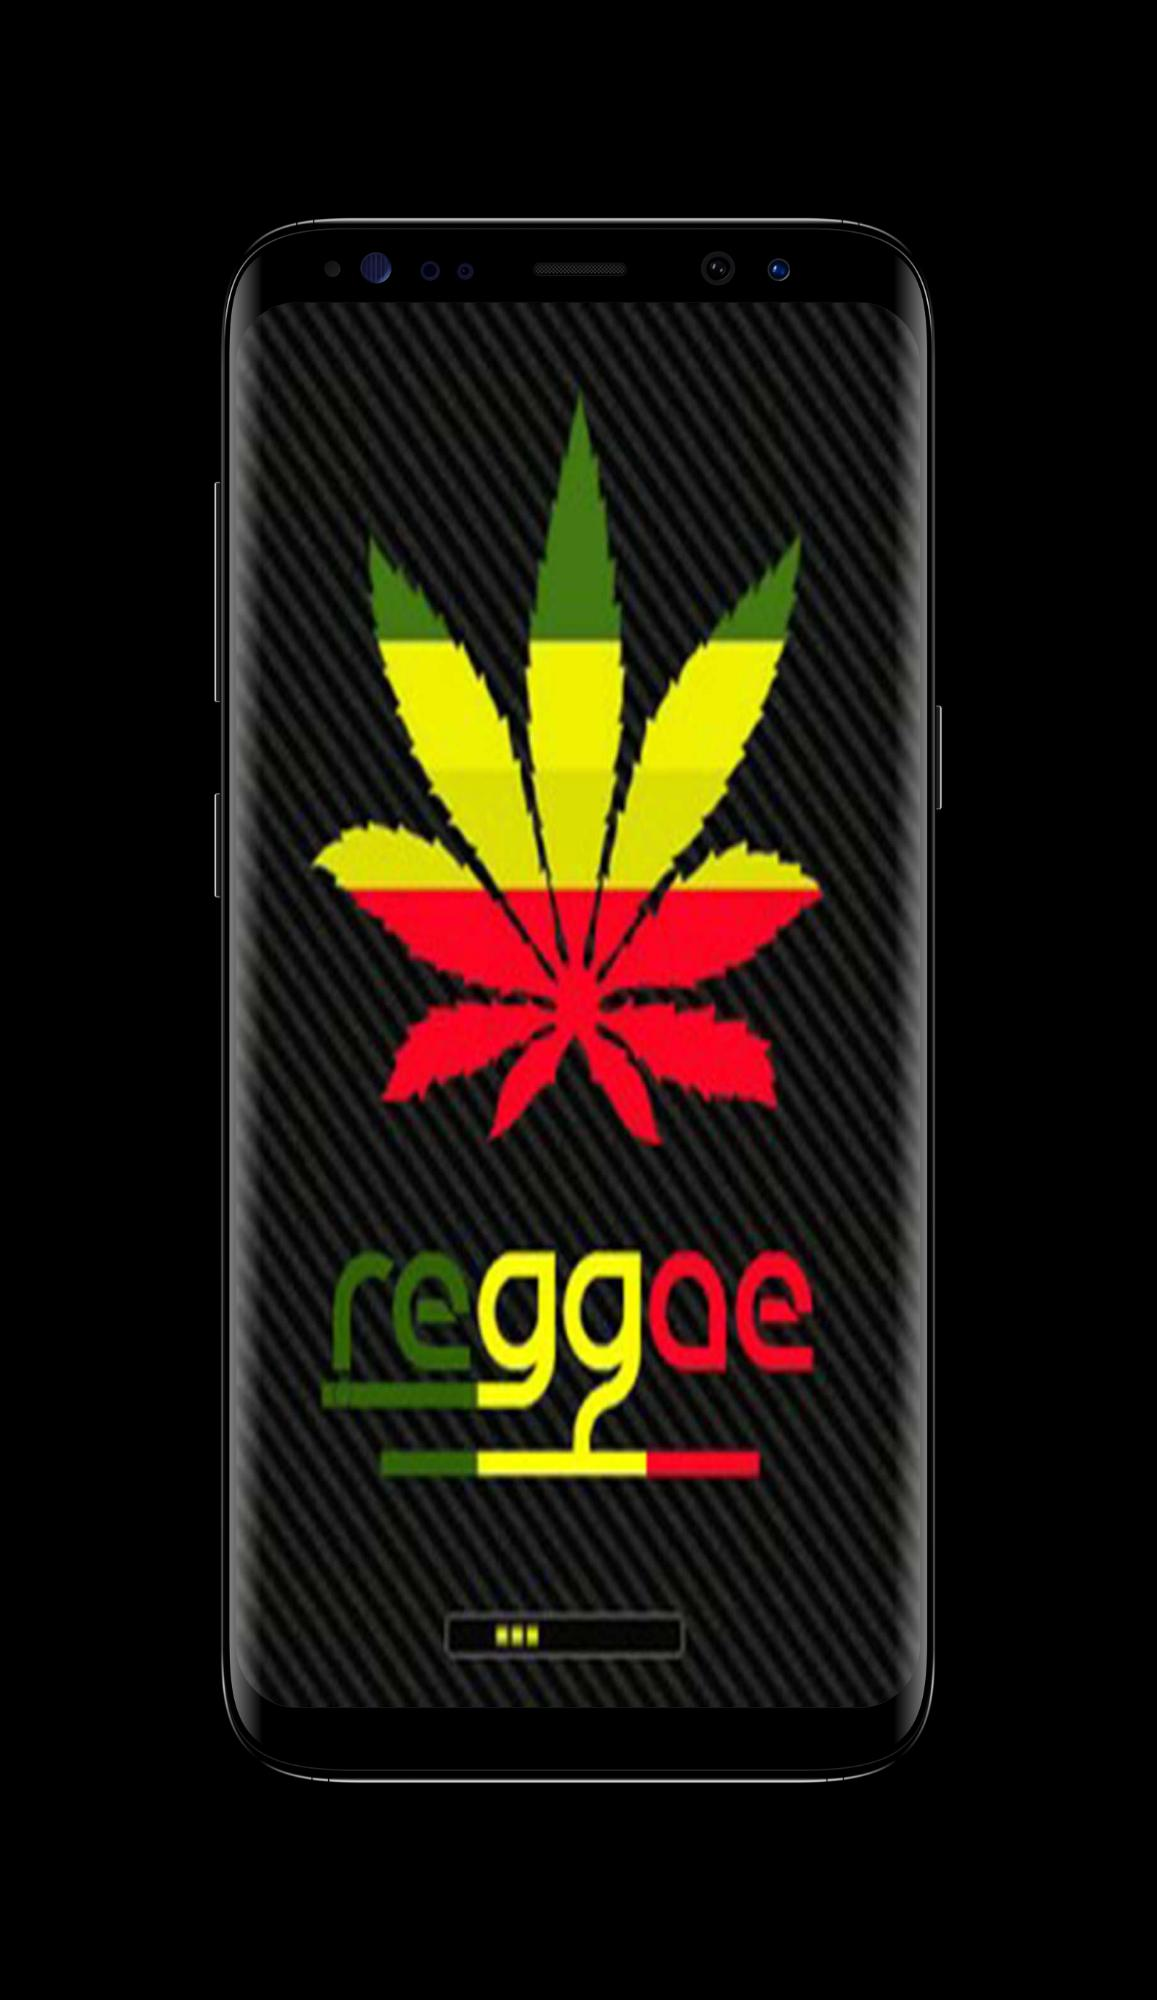 Reggae Wallpapers Hd For Android Apk Download